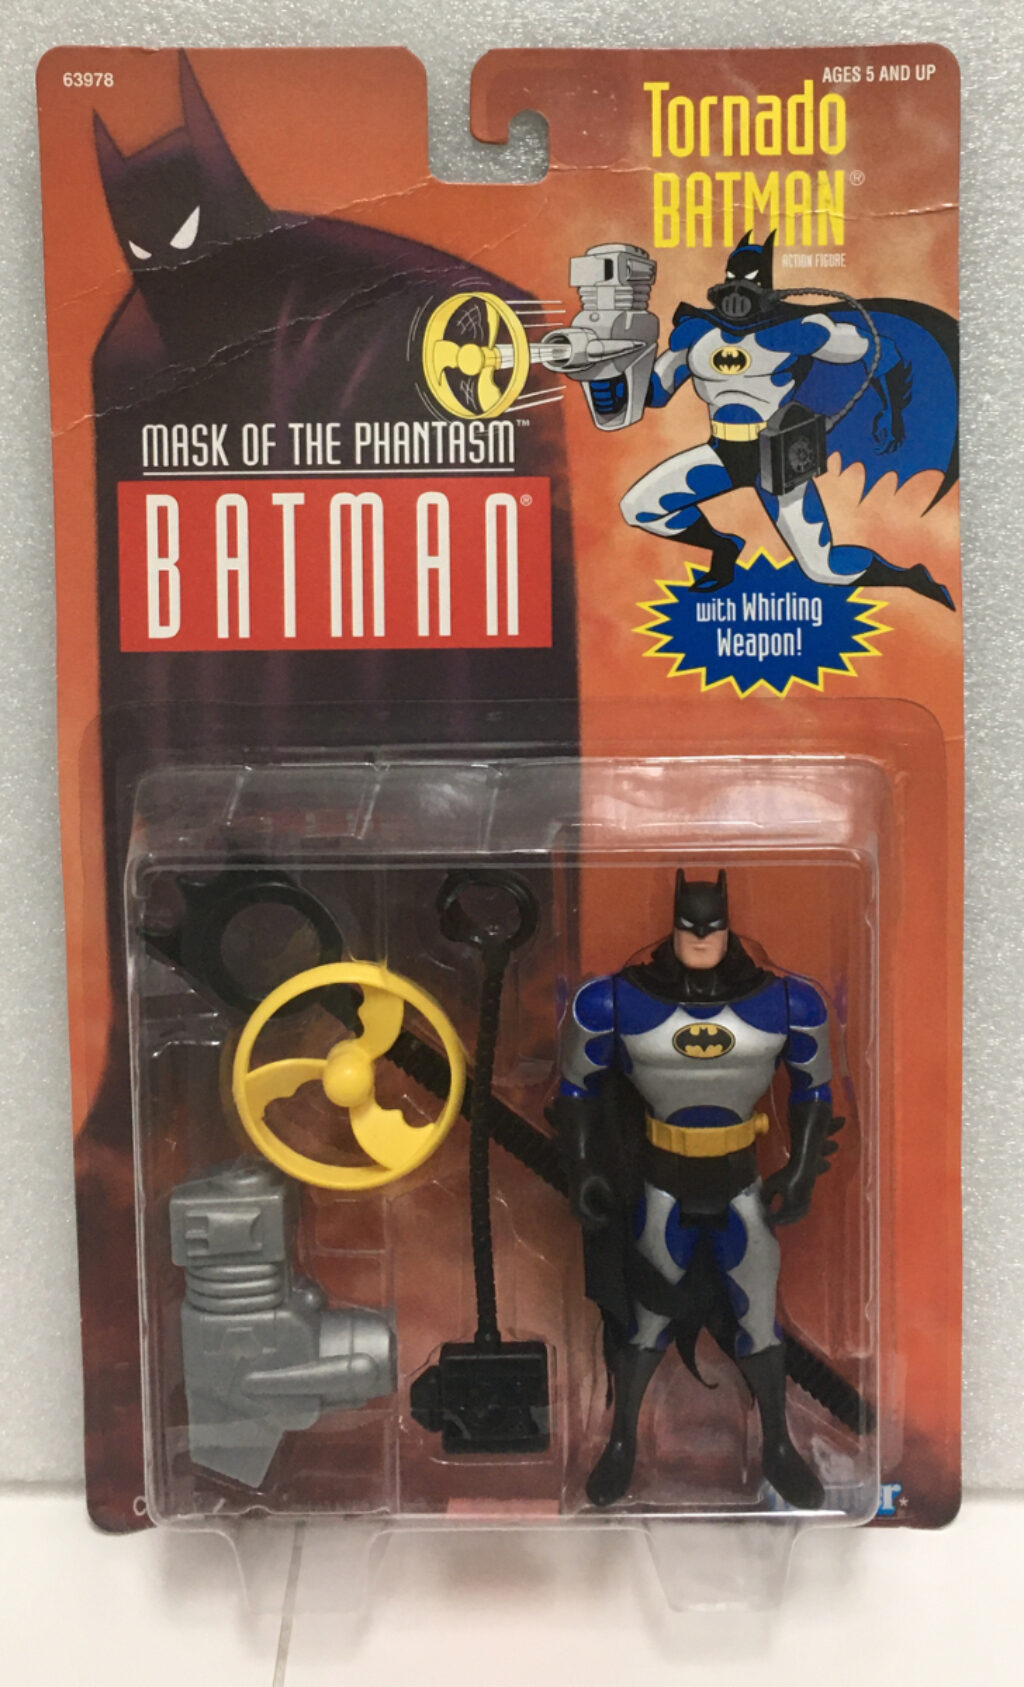 kenner mask of the phantasm tornado batman action figure 1